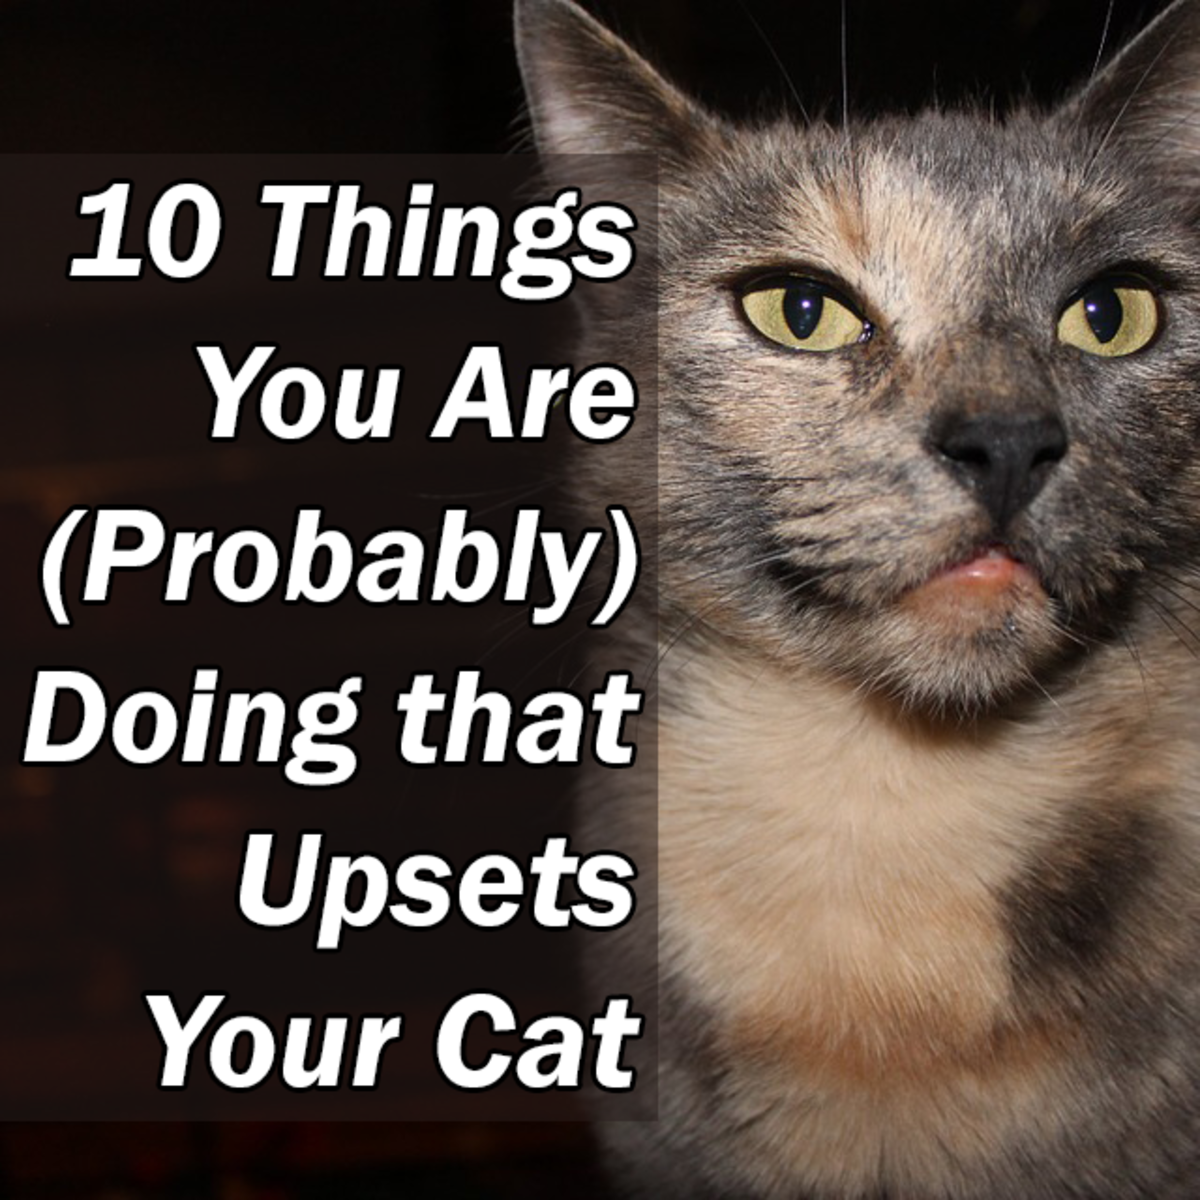 10 Things You Are (Probably) Doing that Upsets Your Cat